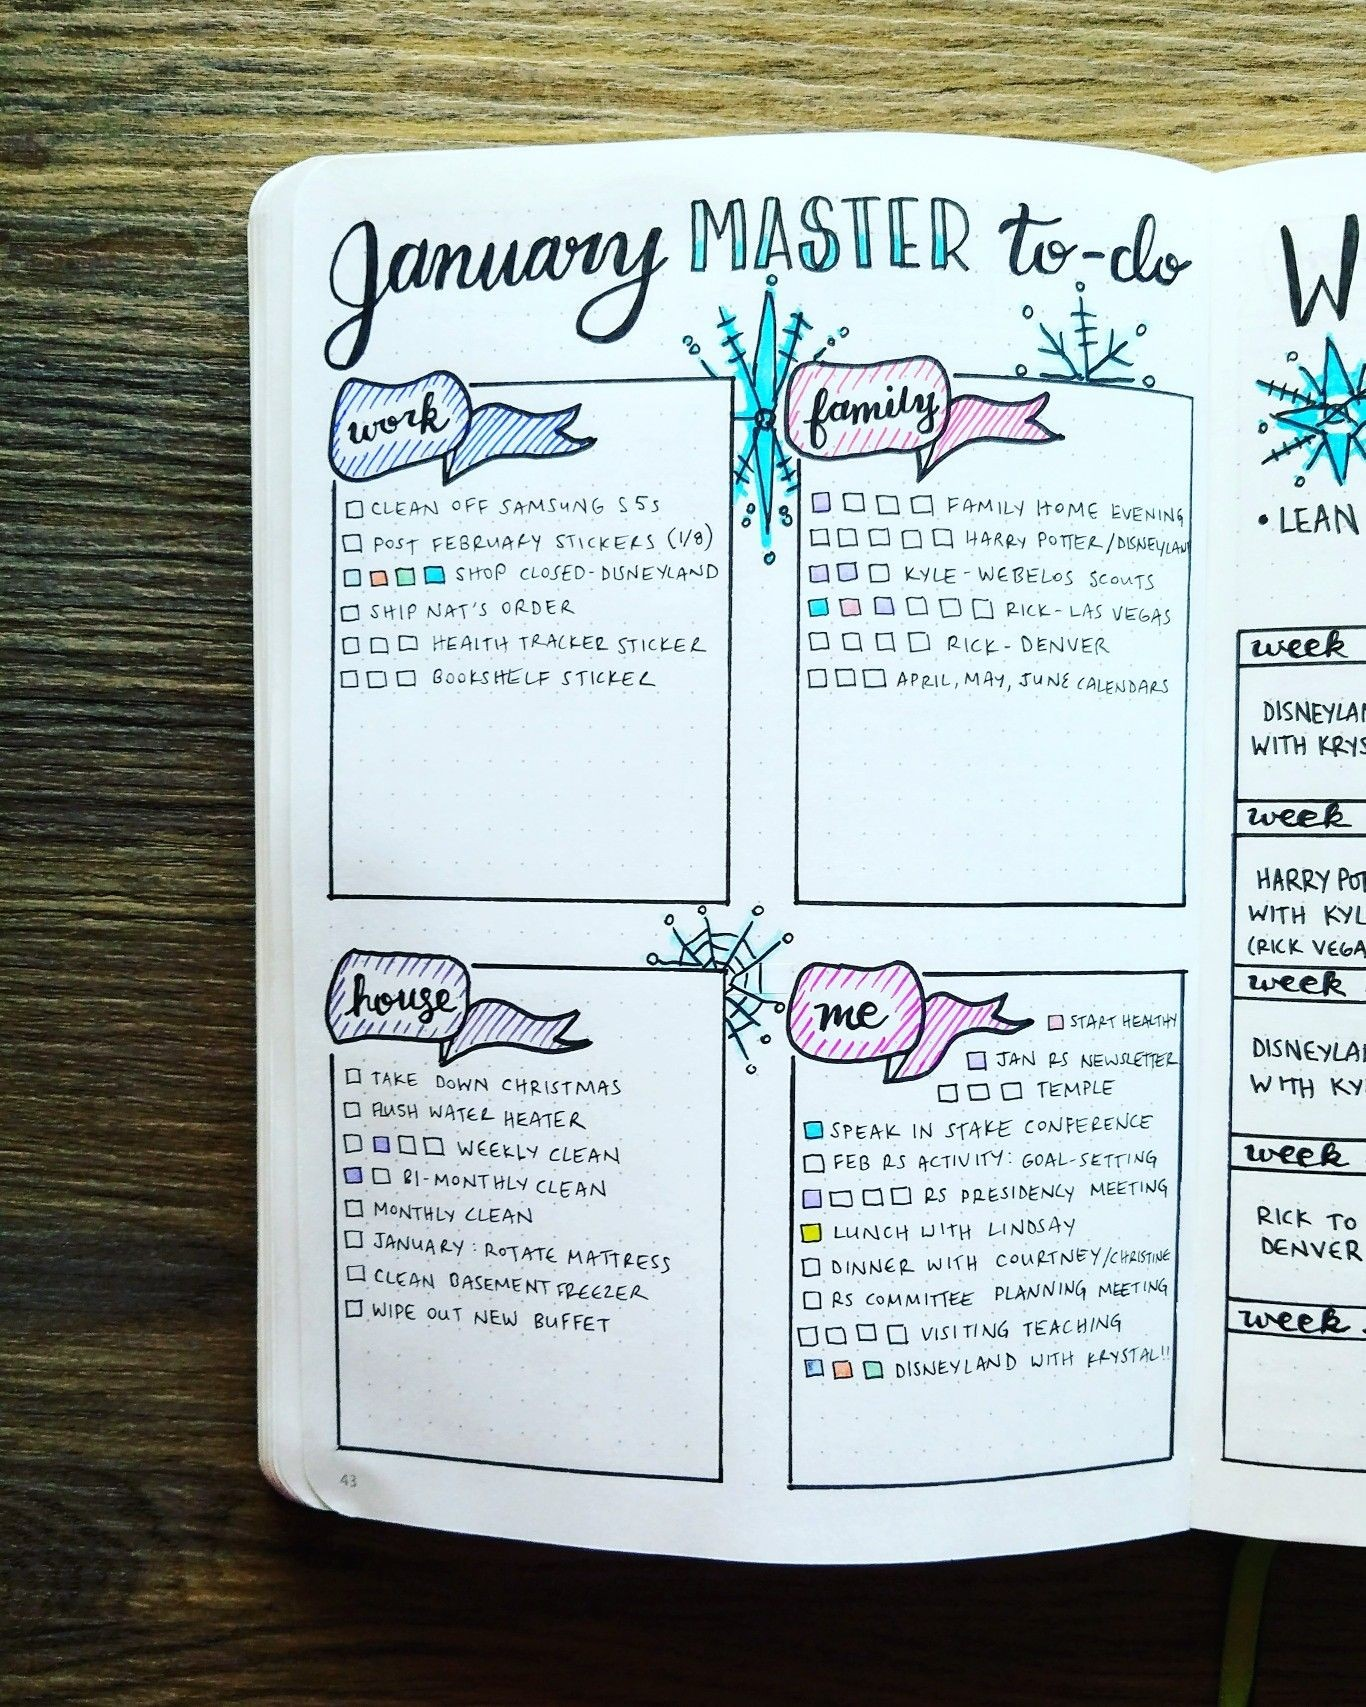 January February March Calendar Más Arriba-a-fecha Pin by Blue Sky Design On Bullet Journaling Pinterest Of January February March Calendar Más Caliente Special Days Calendar for Occasions to Celebrate